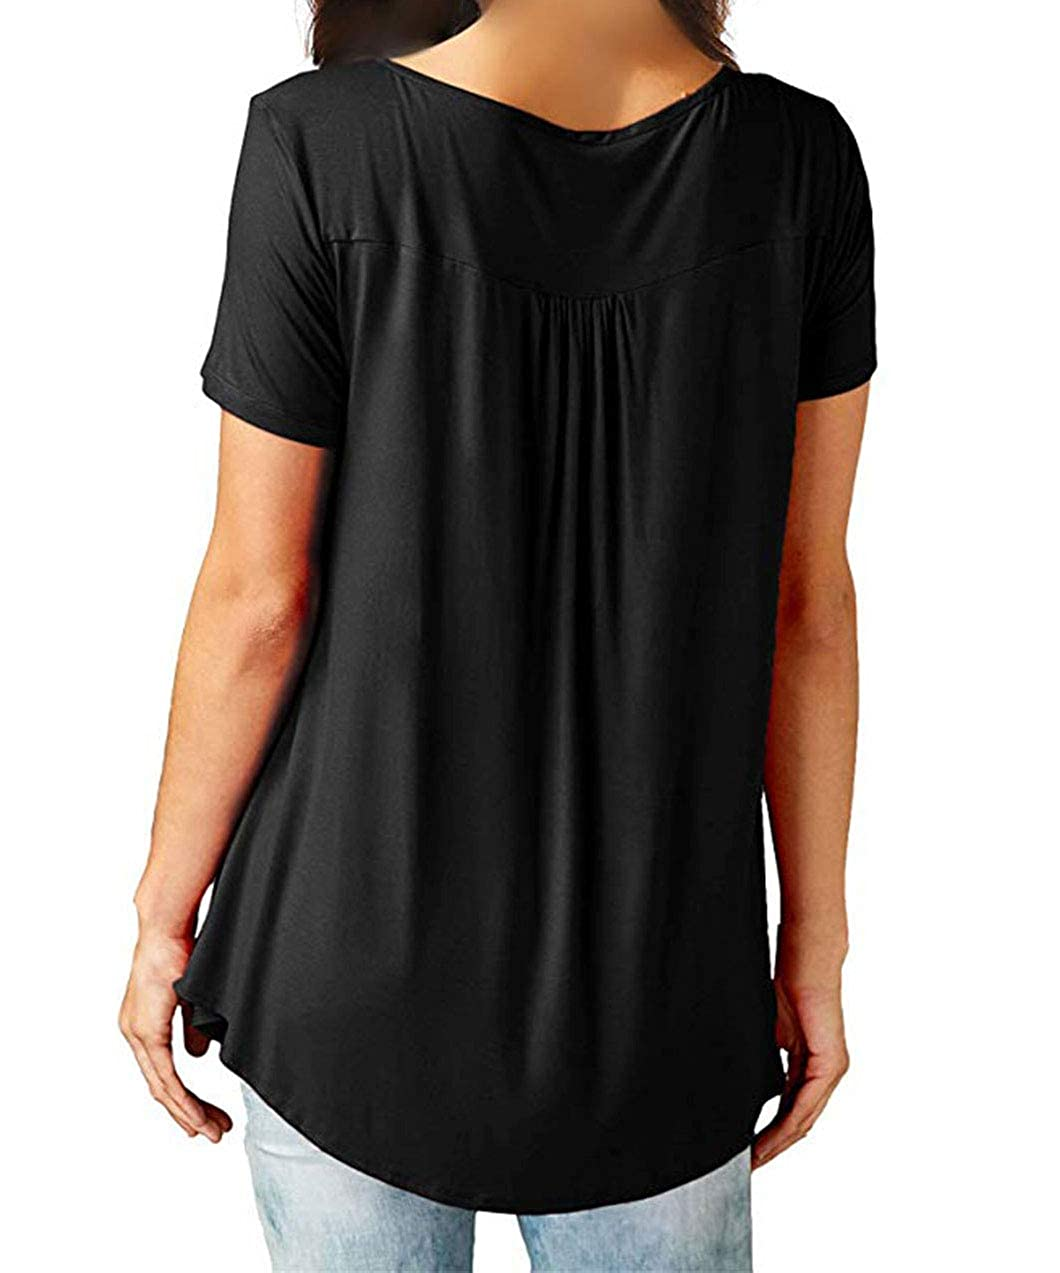 51c07de5f6 AMCLOS Womens Tops Summer V Neck T-Shirts Swing Ruffle Blouses Button up  Tunic Casual Flowy Loose Long Short Sleeve at Amazon Women s Clothing store